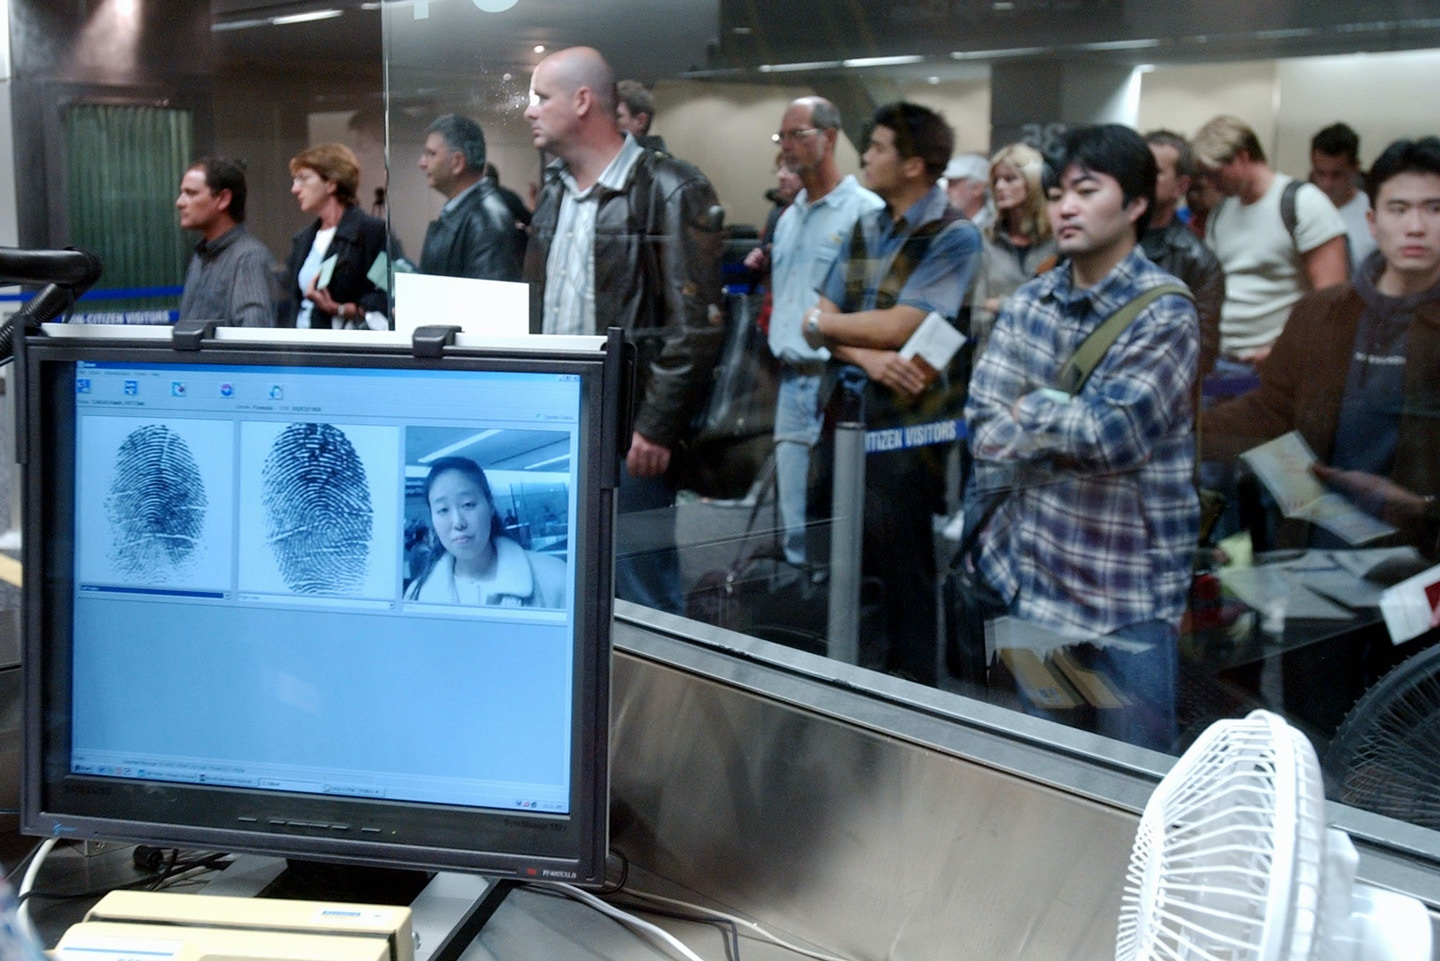 Visitors wait in line to be fingerprinted and photographed at the U.S. Customs check point at San Francisco International Airport in San Francisco Monday, Jan. 5, 2004. Officials began using the US-VISIT system on Monday to scan fingerprints and take photographs of arriving foreigners as part of a program aimed at preventing and trapping possible terrorists. (AP Photo/Marcio Jose Sanchez)